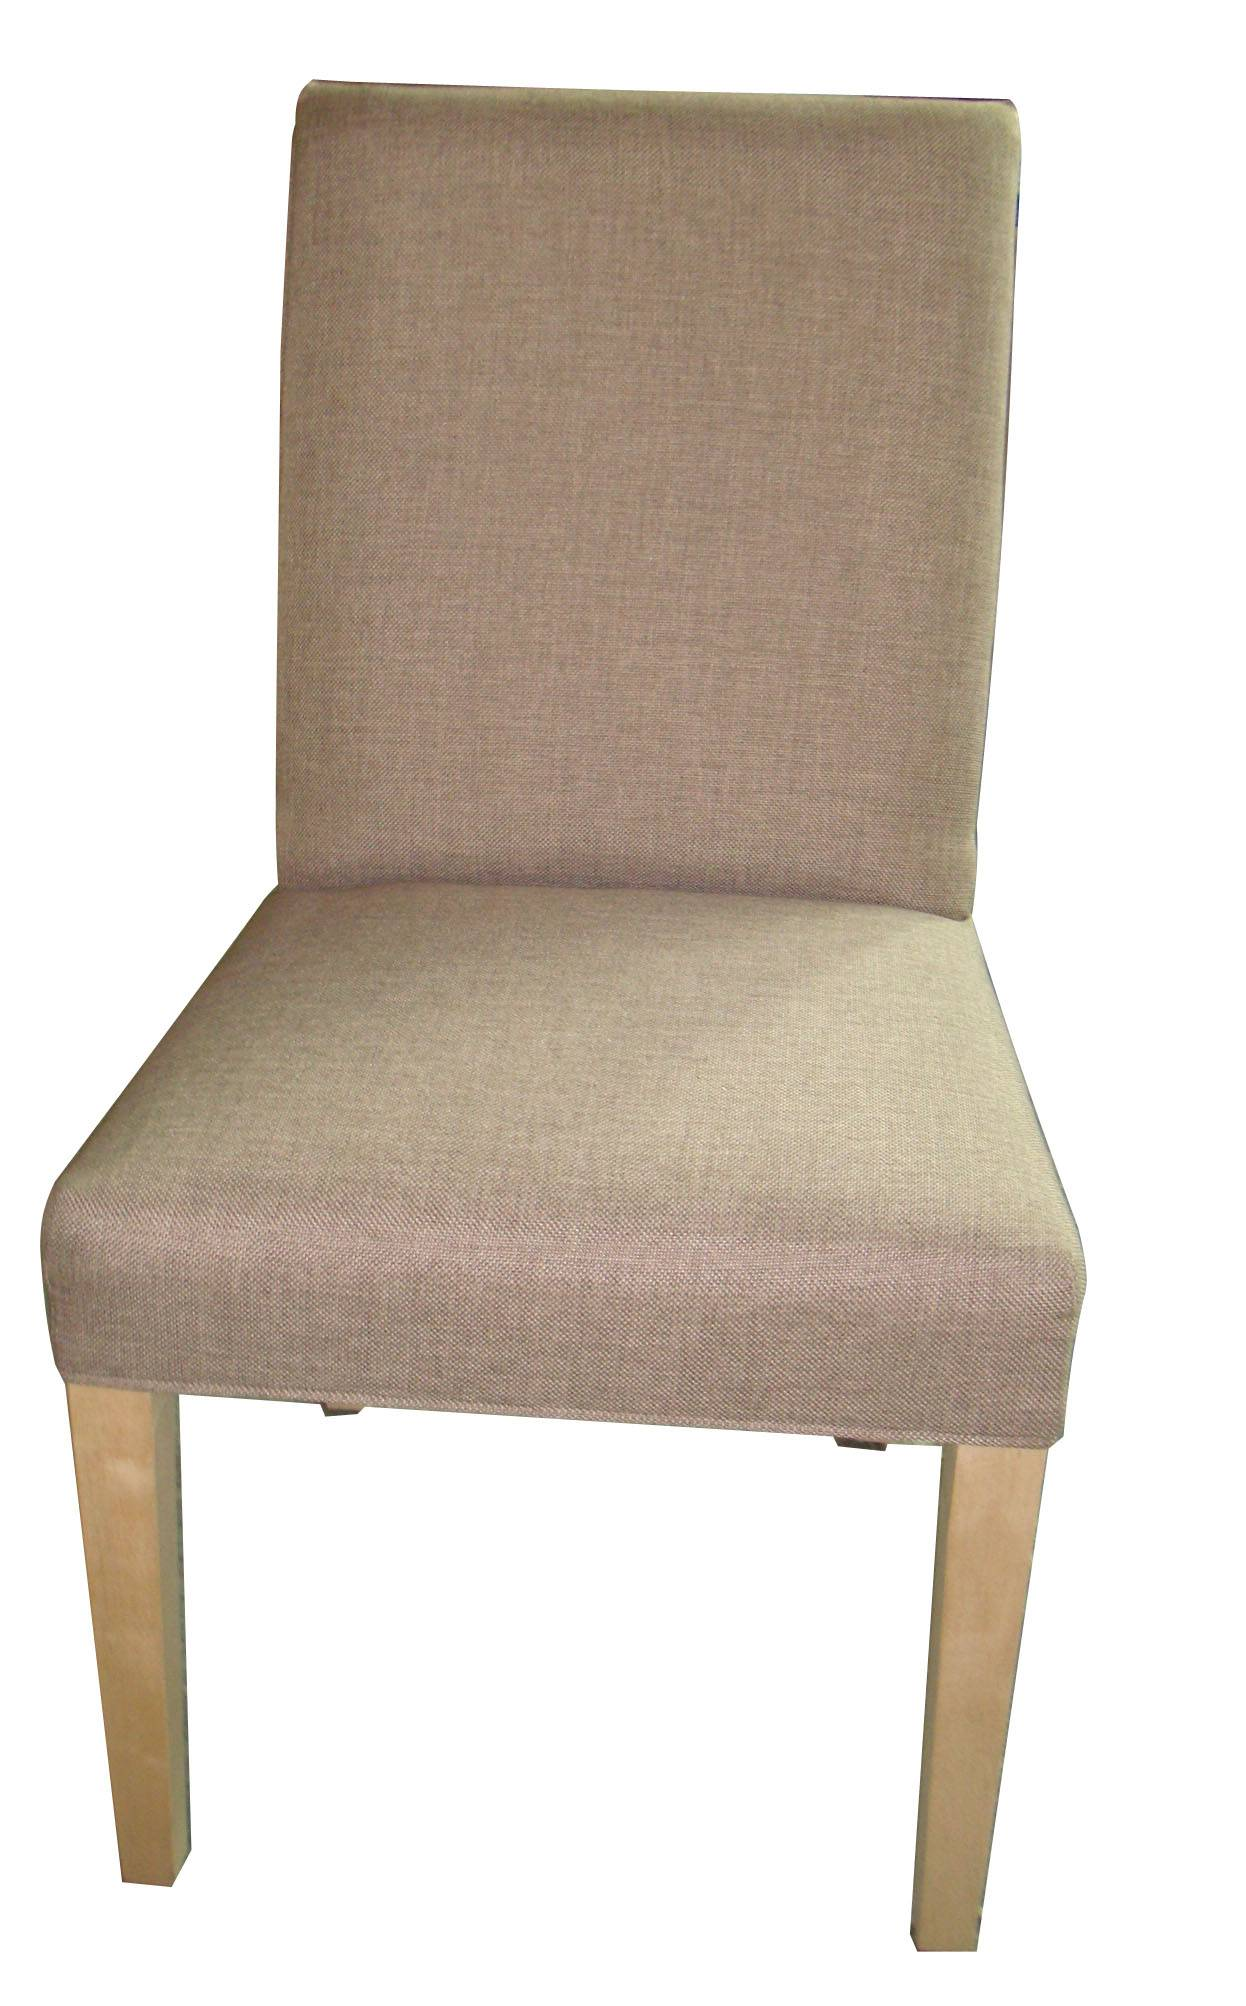 Fabric Dining Chair 70730